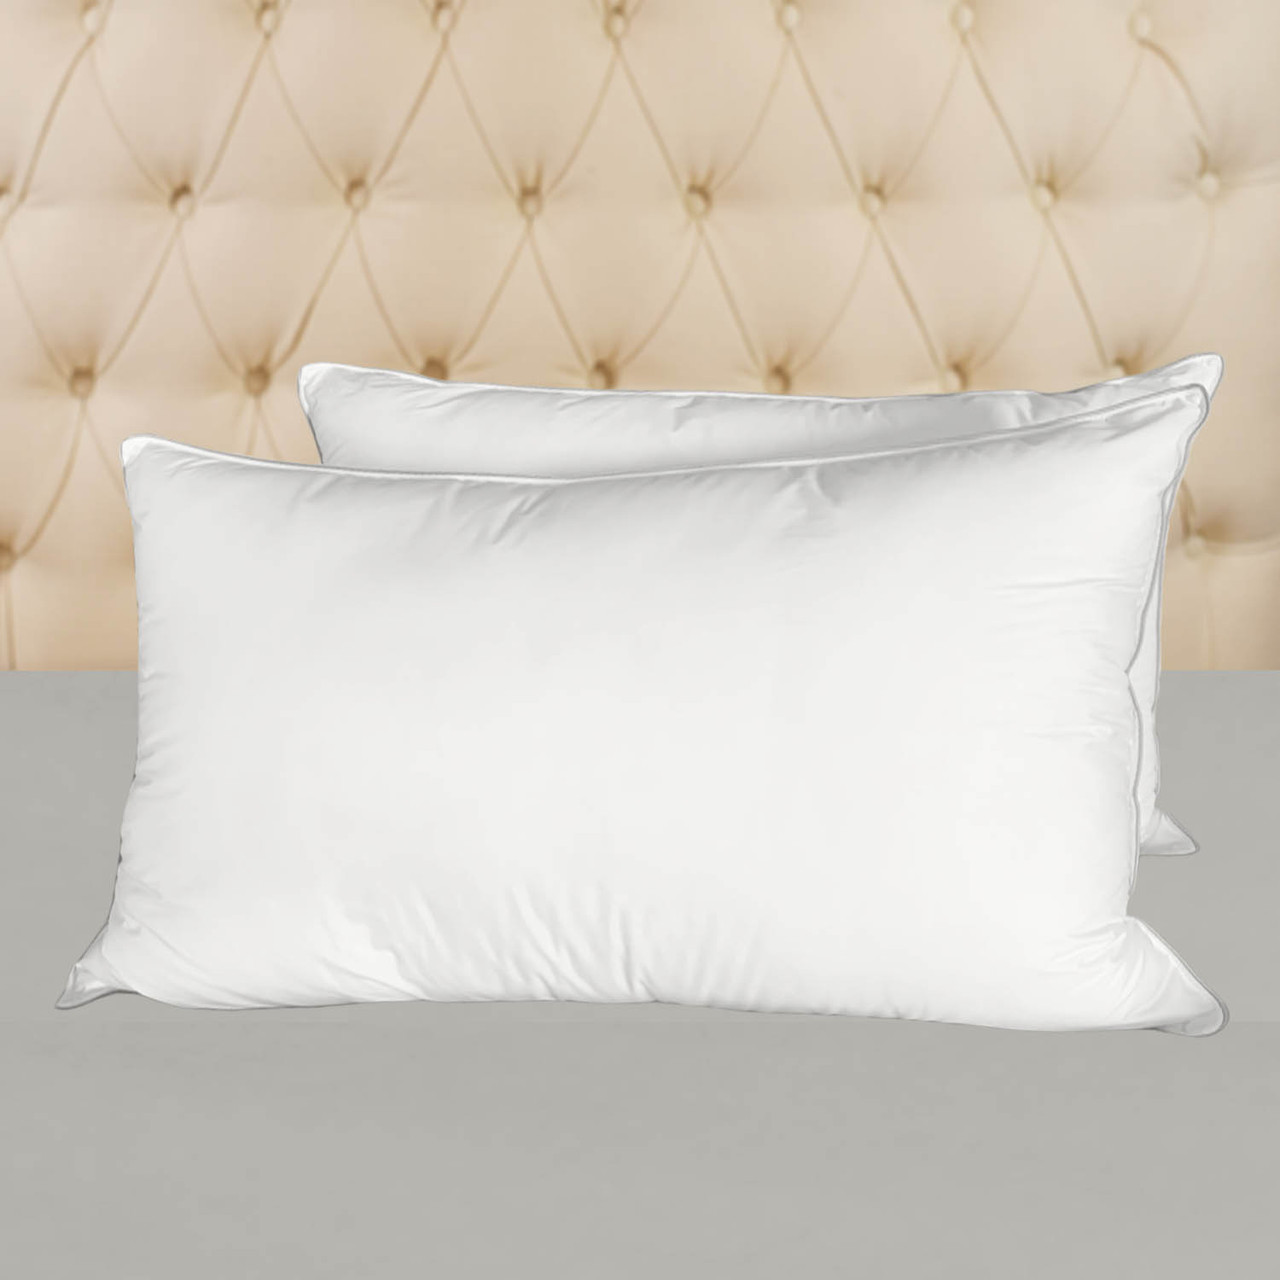 https www naturalcomfortcompany com premier hotel pillows allergy shields anti dustmite microfiber pillows medium firm filled set of two